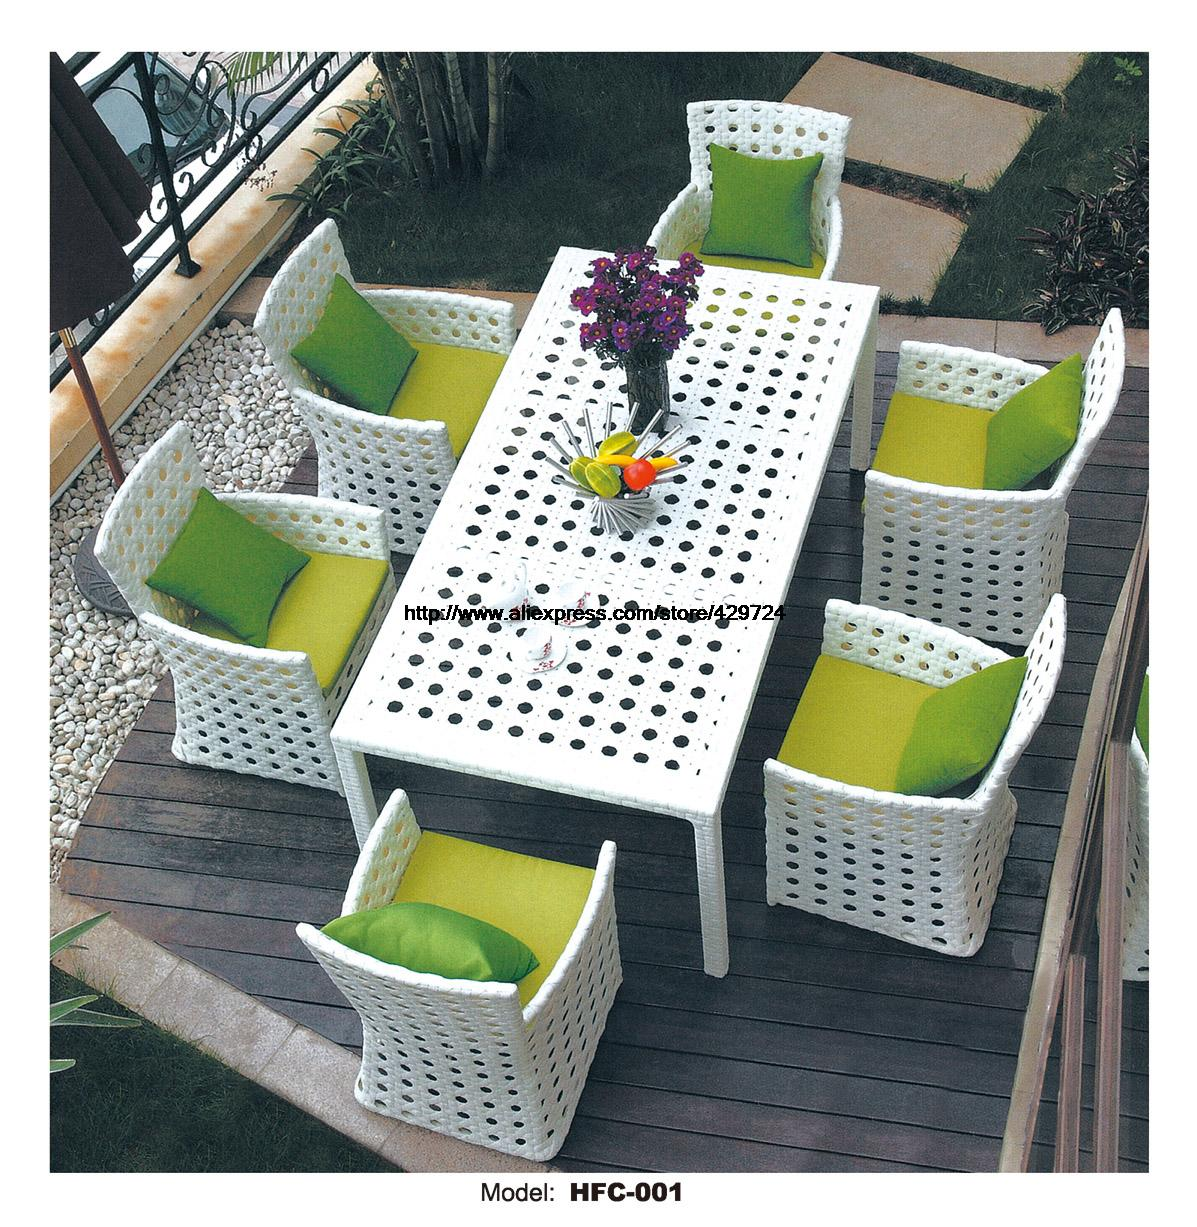 Groovy Us 899 0 Modern White Rattan Table Chair Set 6 Piece Furniture Suite Outdoor Rattan Garden Beach Wicker Furniture Chair Table Set Hfc001 In Garden Pabps2019 Chair Design Images Pabps2019Com